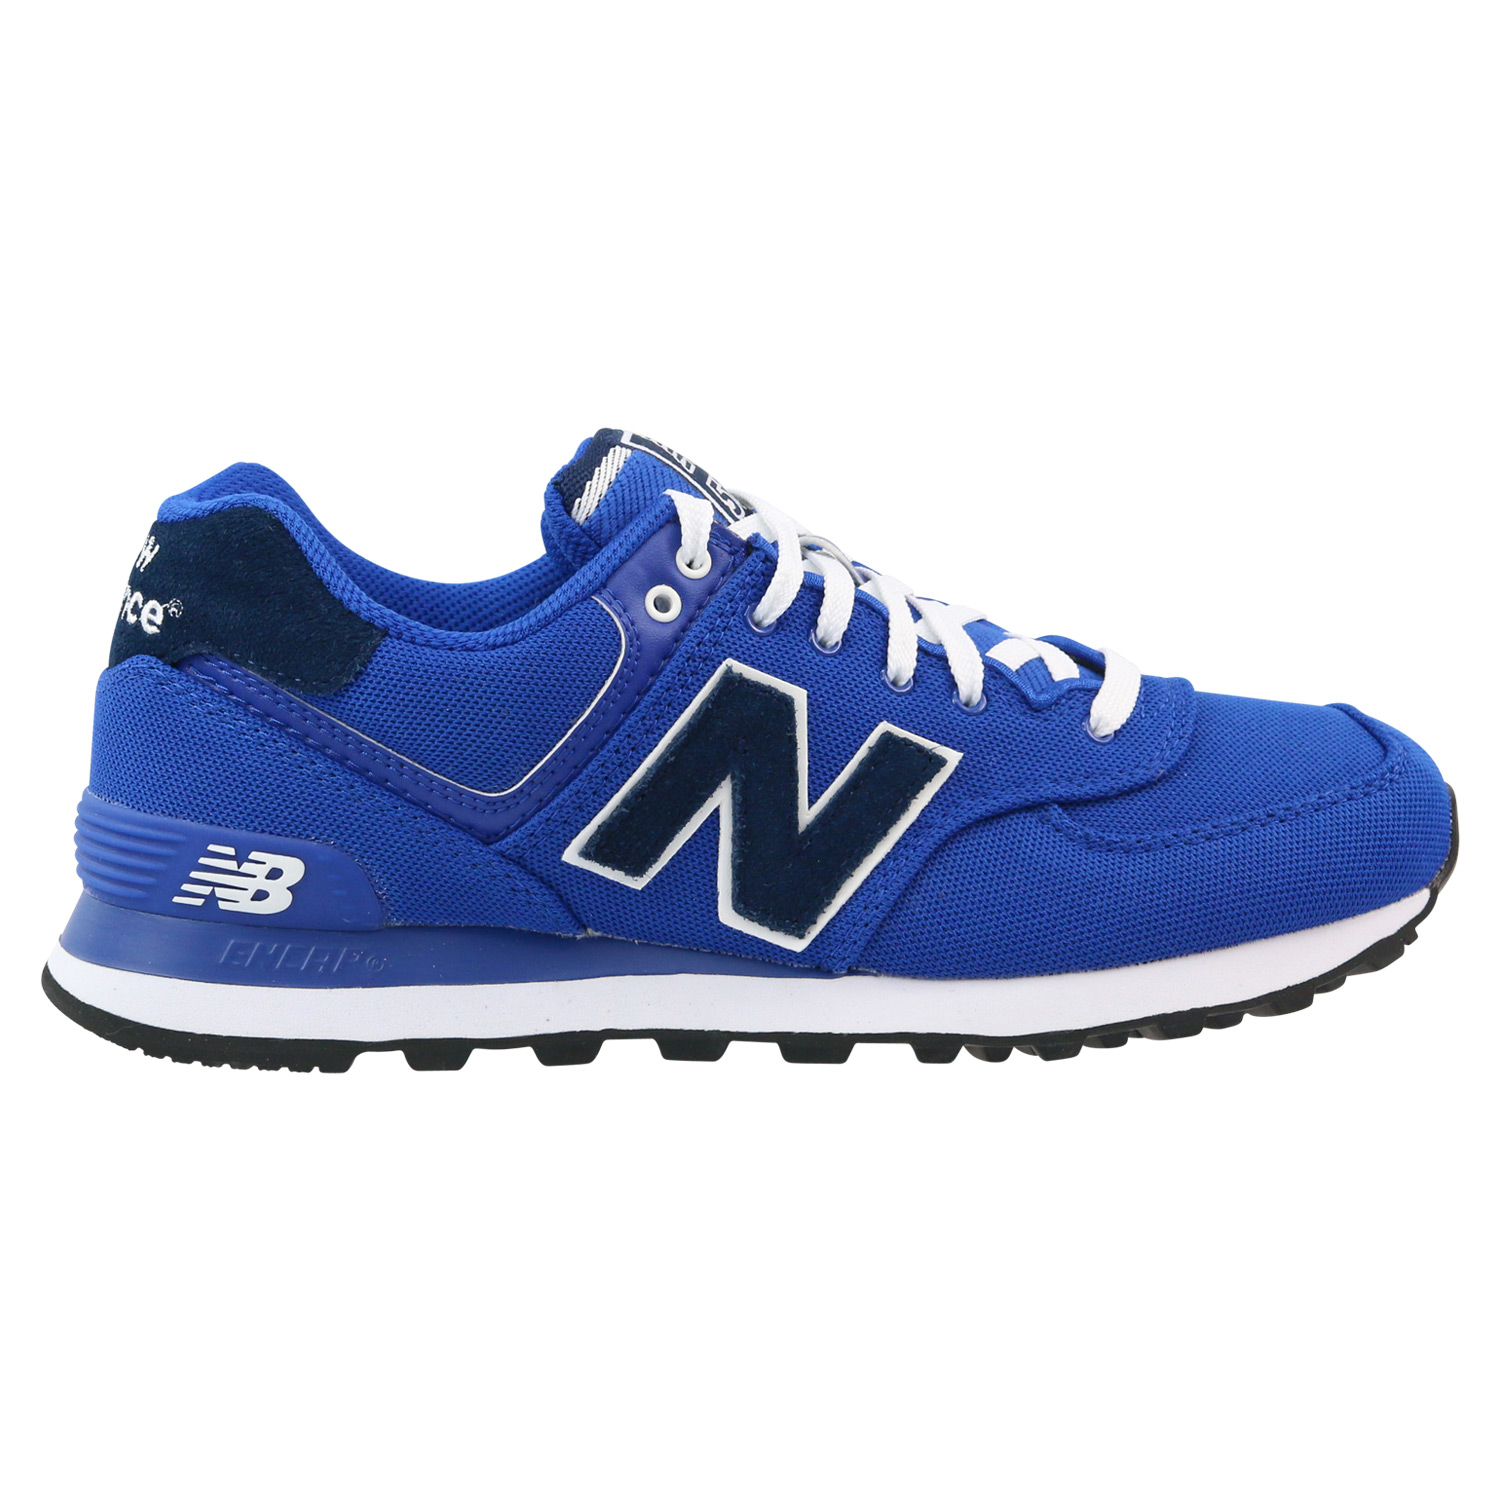 new balance ml574 schuhe sneaker turnschuhe herren damen textil diverse farben ebay. Black Bedroom Furniture Sets. Home Design Ideas